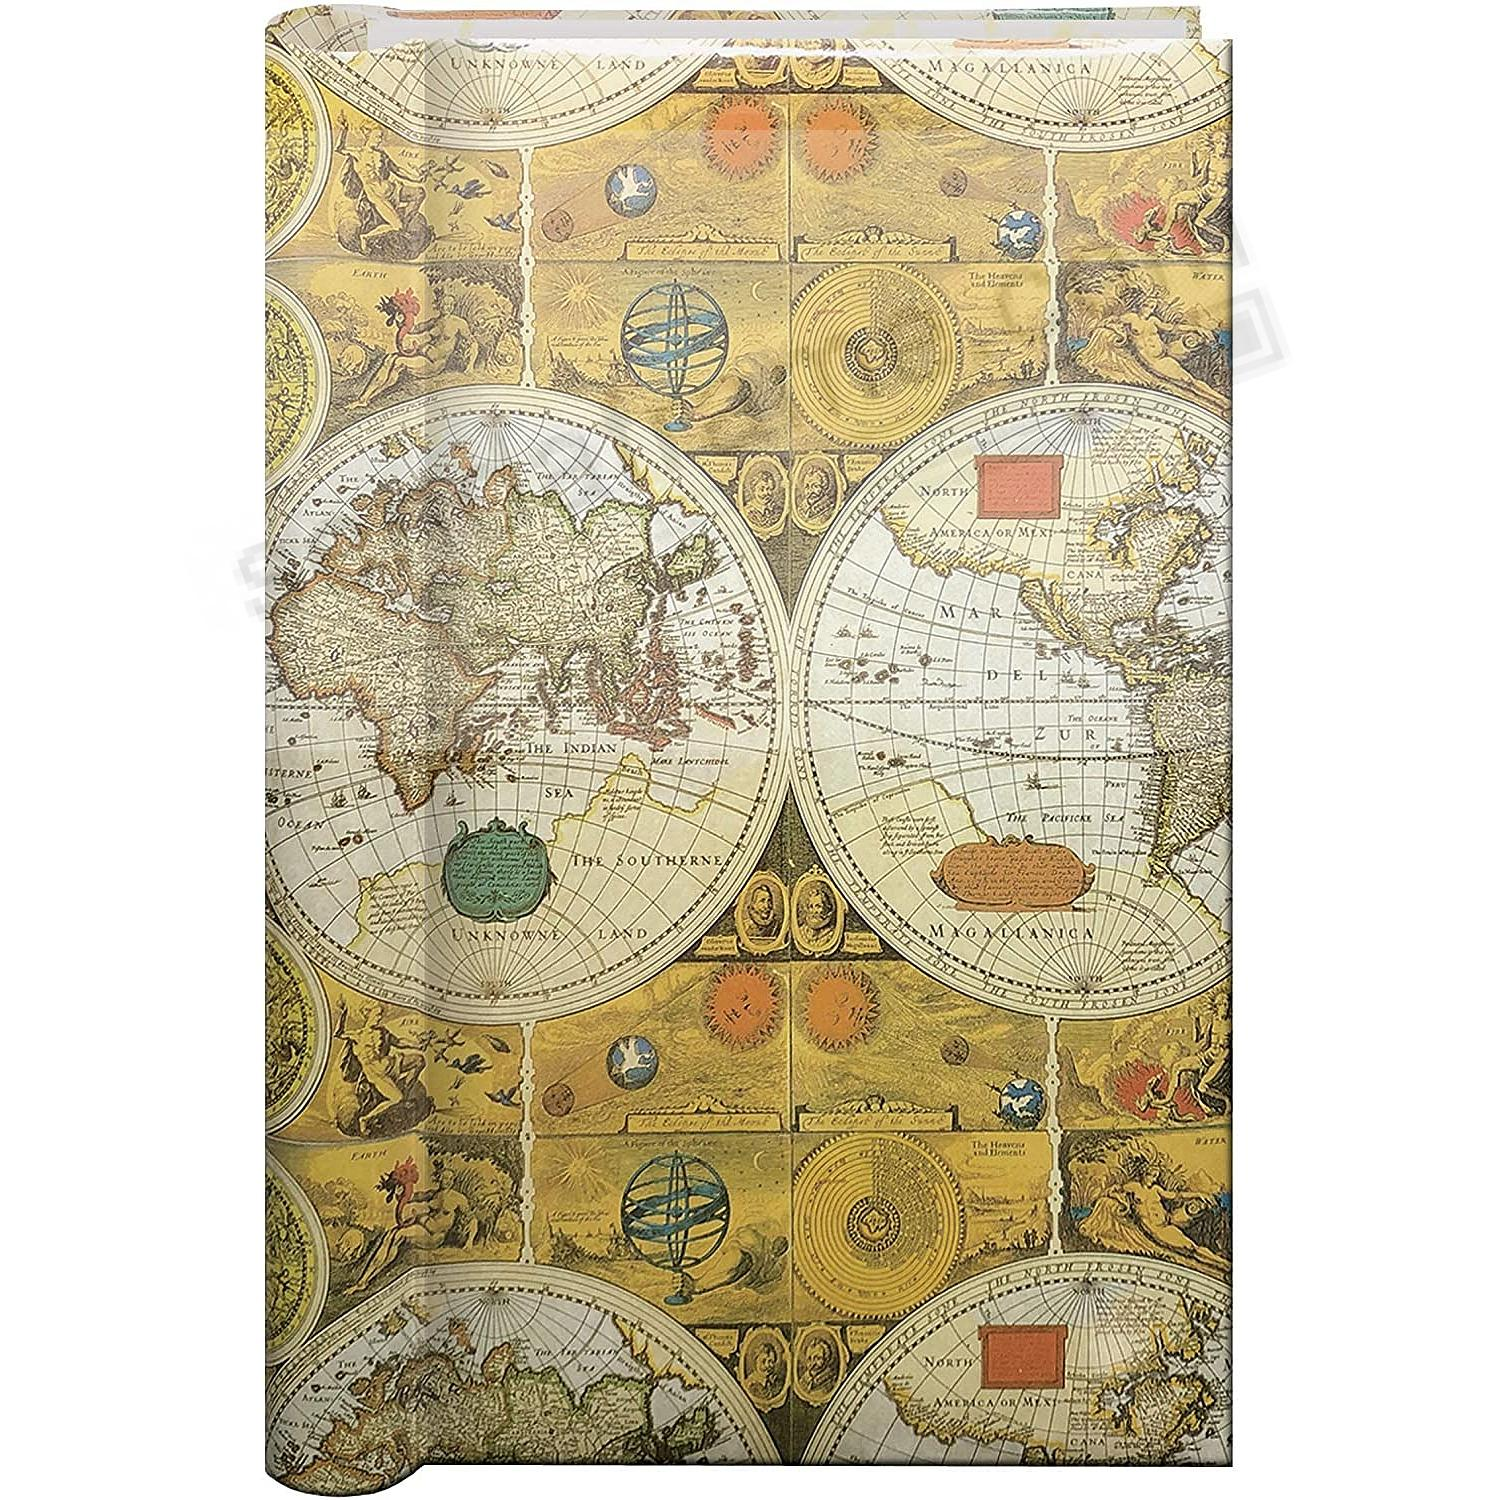 Spiral 3-Up Bi-Directional ANCIENT MAP Memo Pocket album